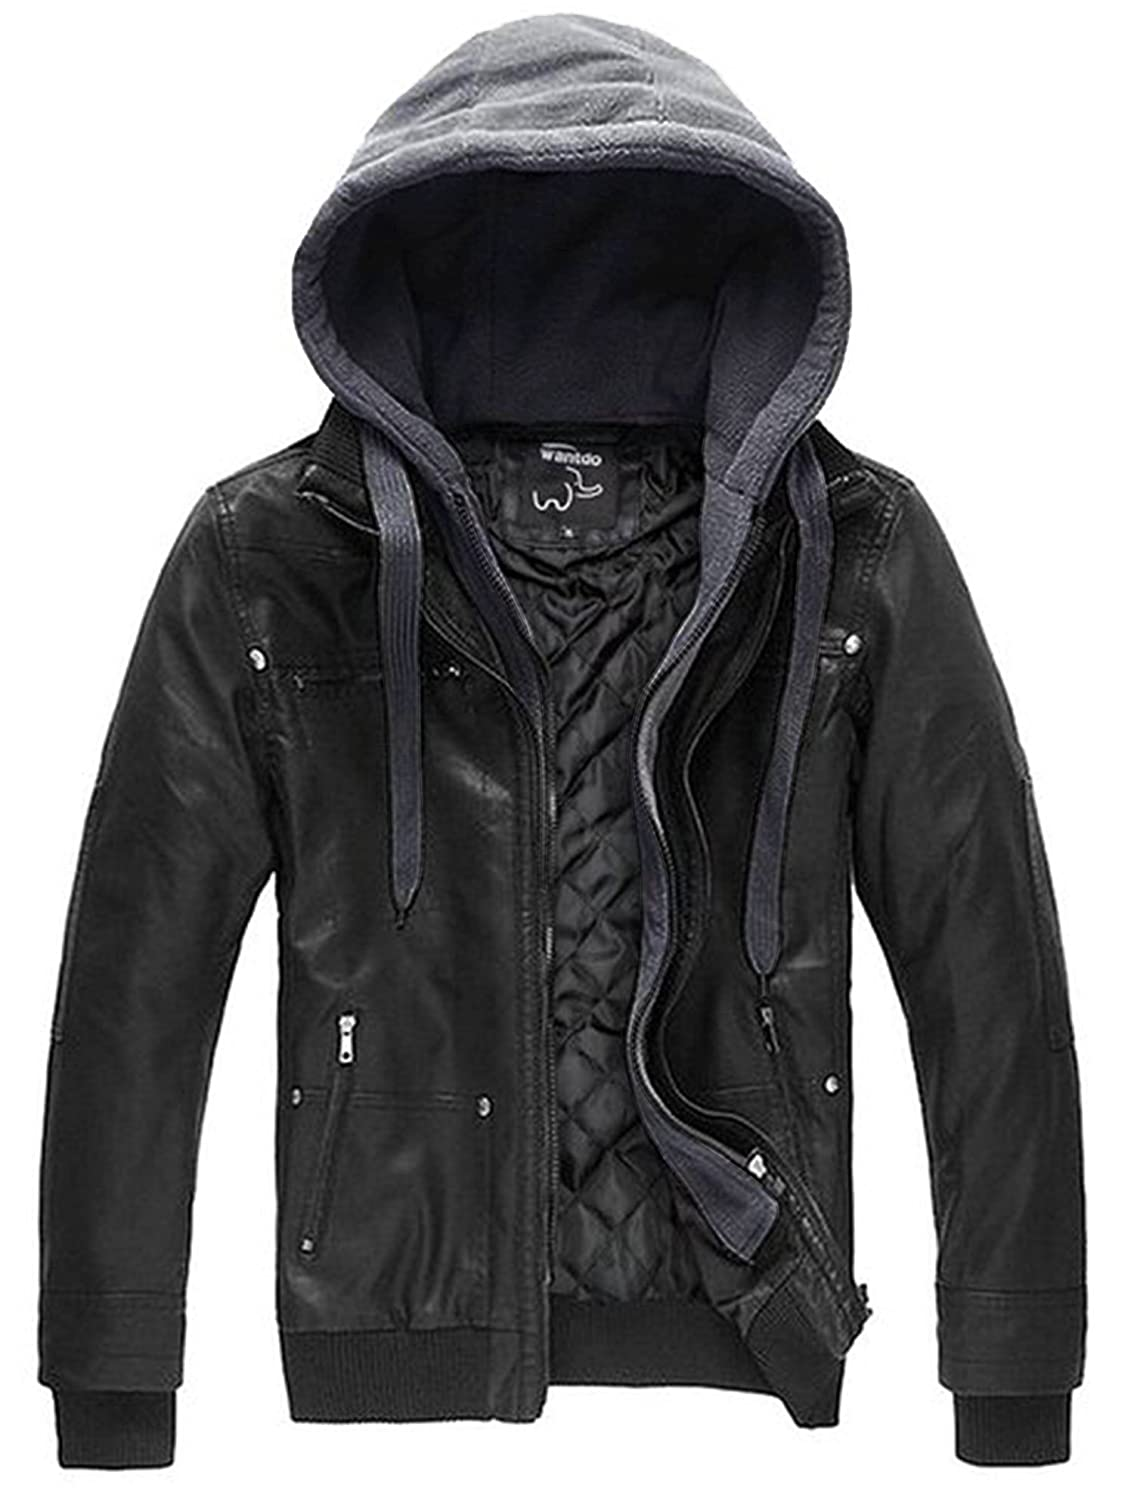 Wantdo Men's Faux Leather Jacket with Removable Hood at Amazon ...